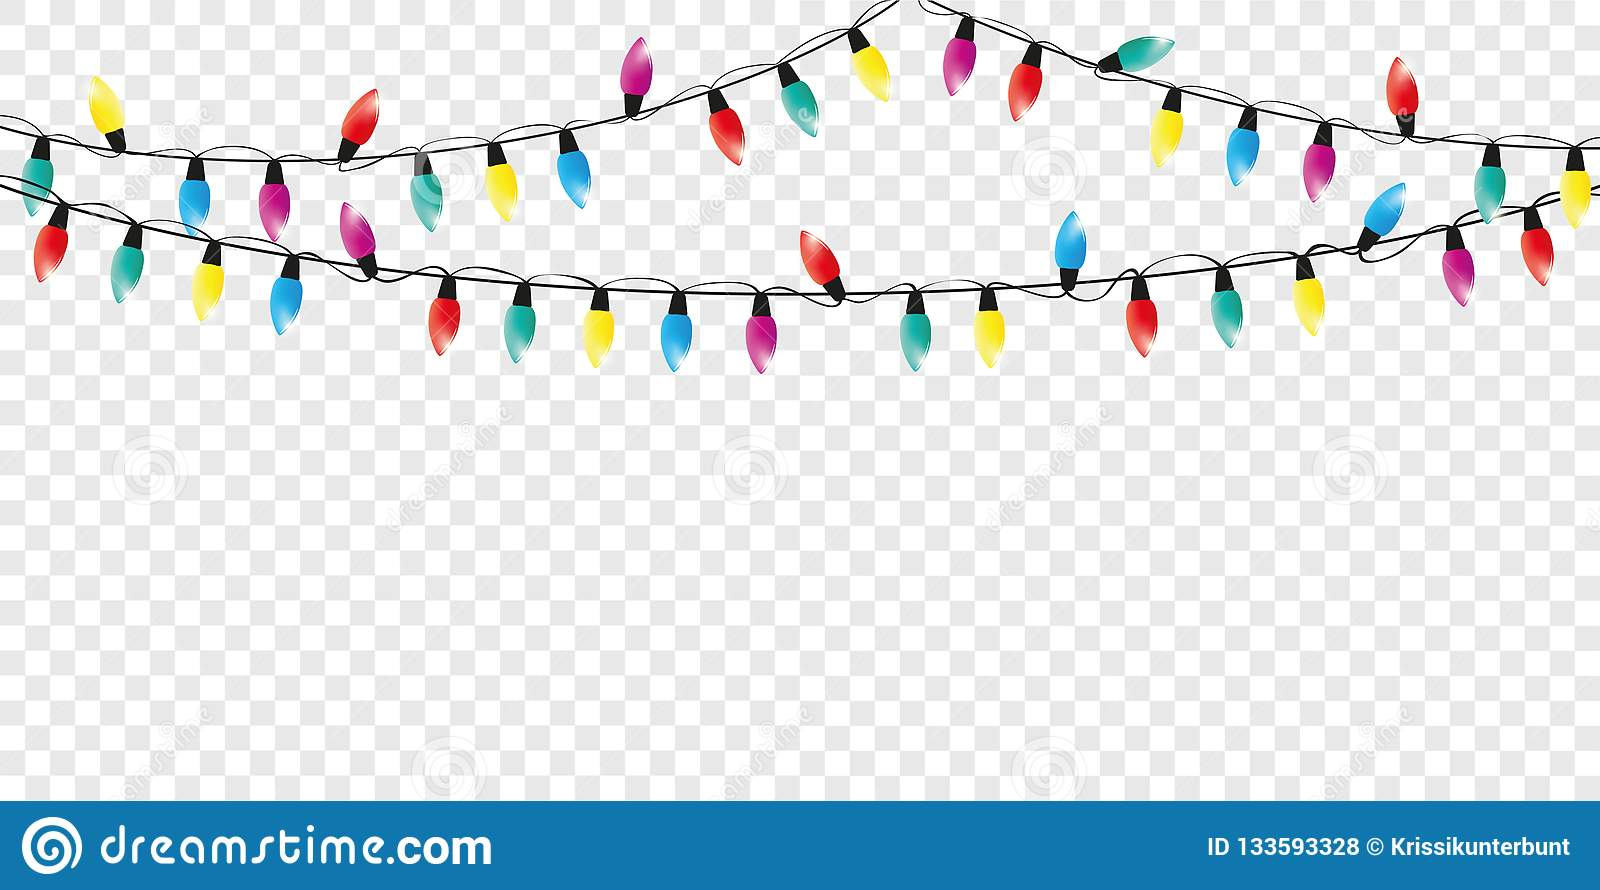 Christmas Fairy Lights Illustration.Colorful Christmas Fairy Lights Decoration Isolated Party